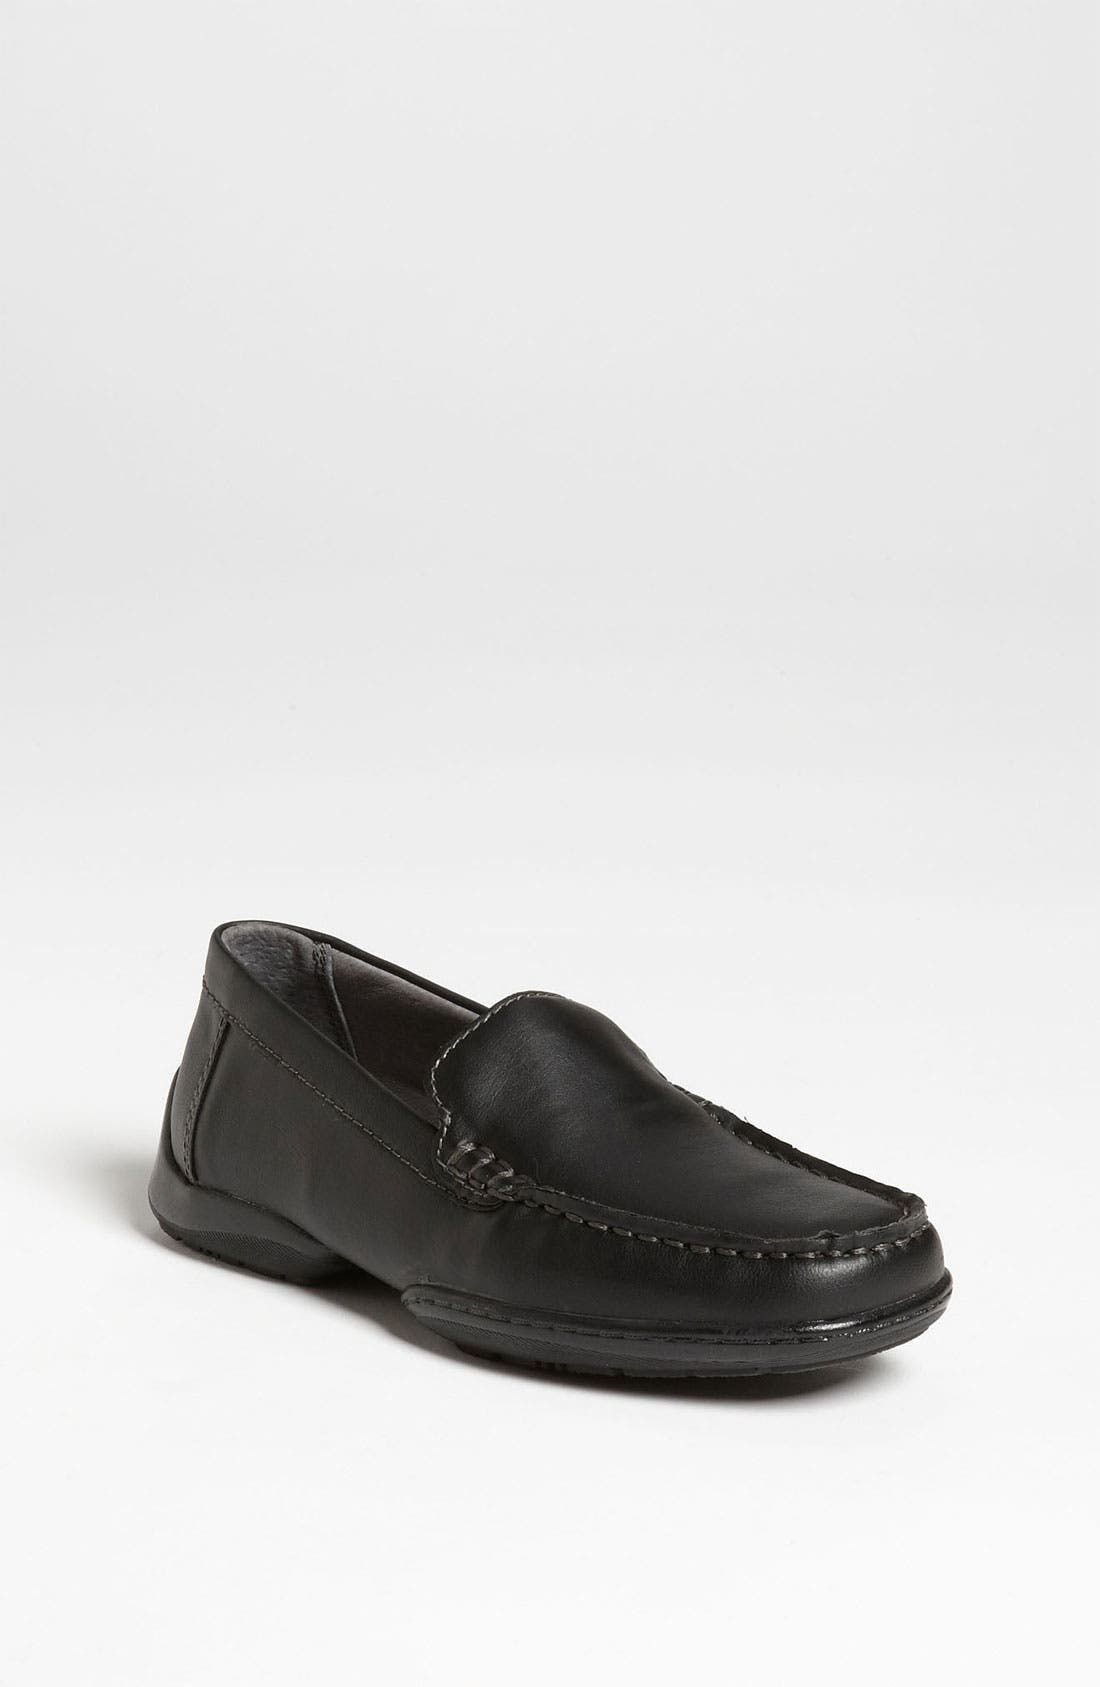 Main Image - Nordstrom 'Tanner' Loafer (Toddler, Little Kid & Big Kid)